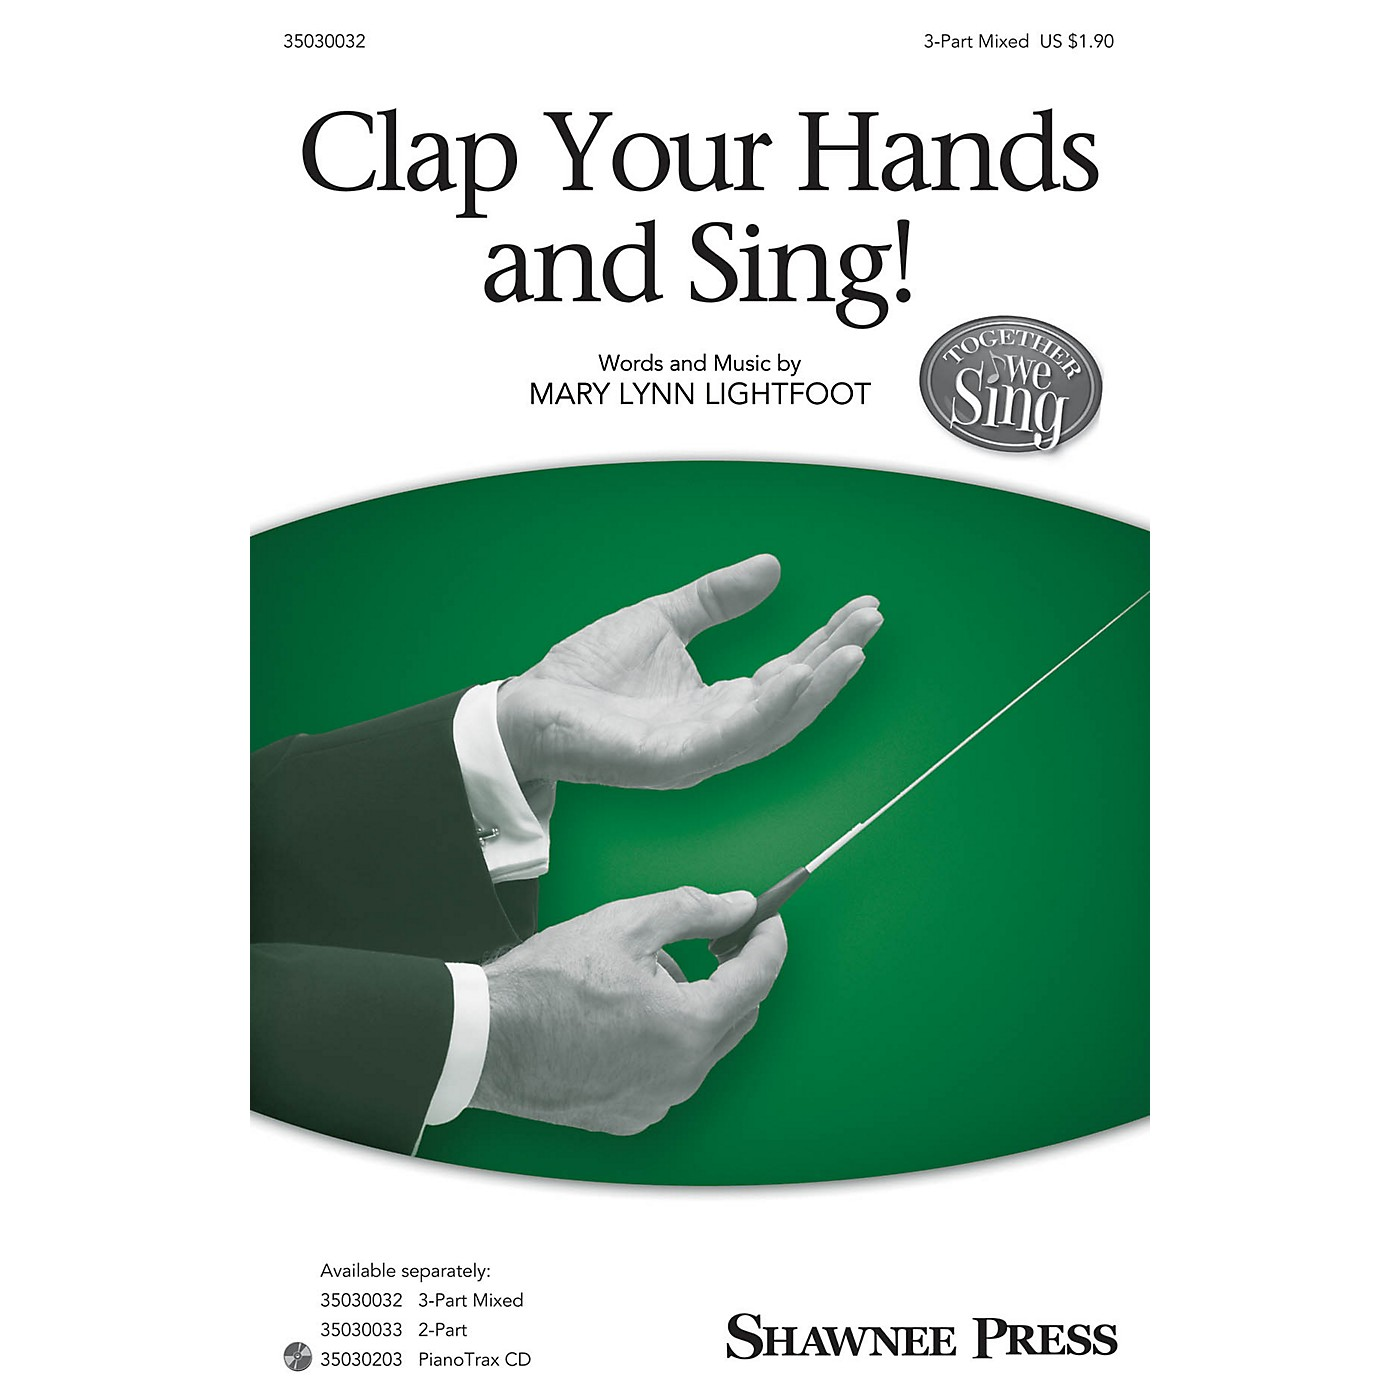 Shawnee Press Clap Your Hands and Sing! (Together We Sing Series) 3-Part Mixed thumbnail